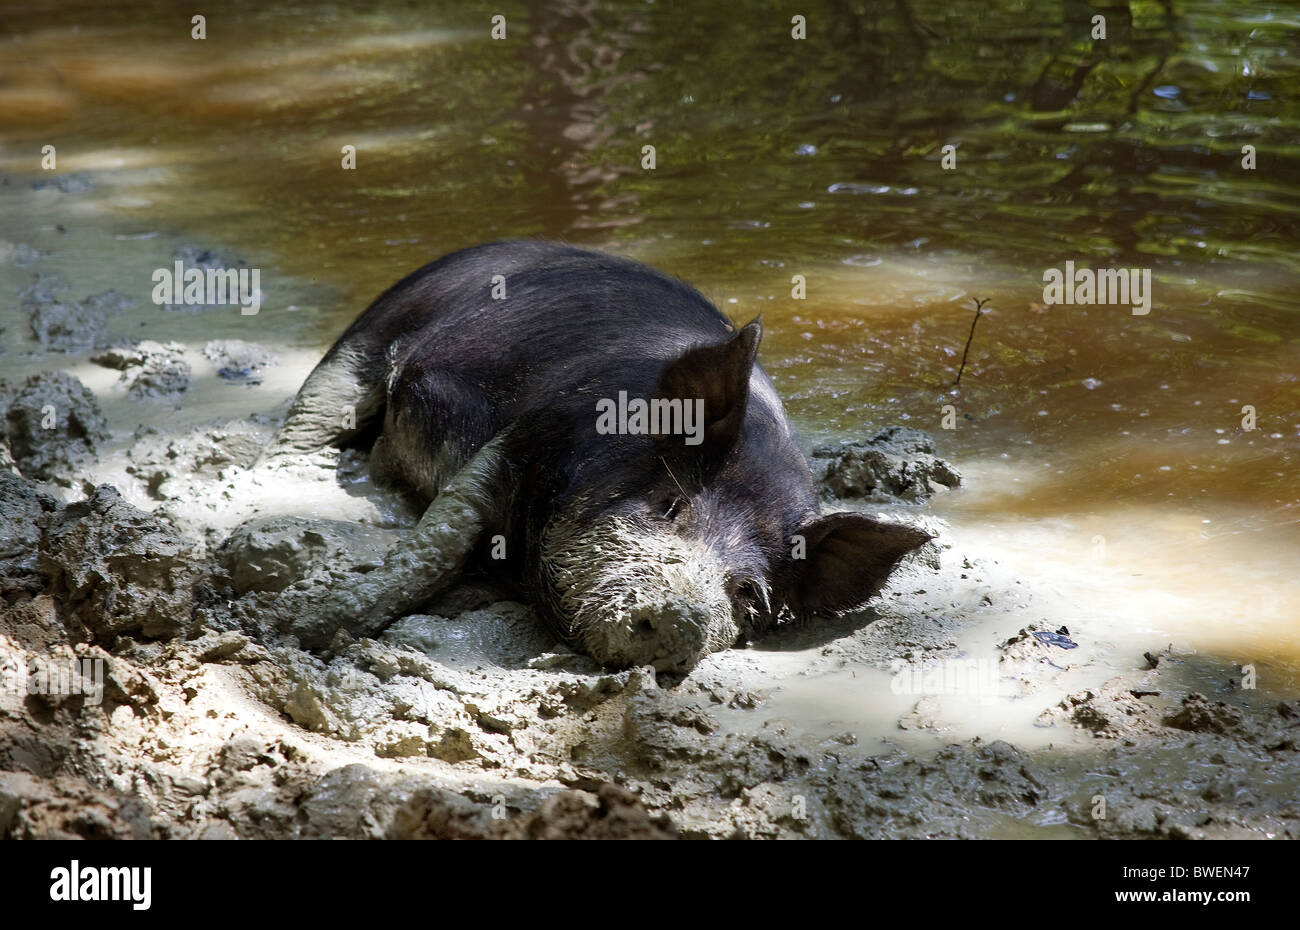 Free range Berkshire pig happily wallowing in muddy clay in pond at Coopers Farm, Stonegate East Sussex UK - Stock Image